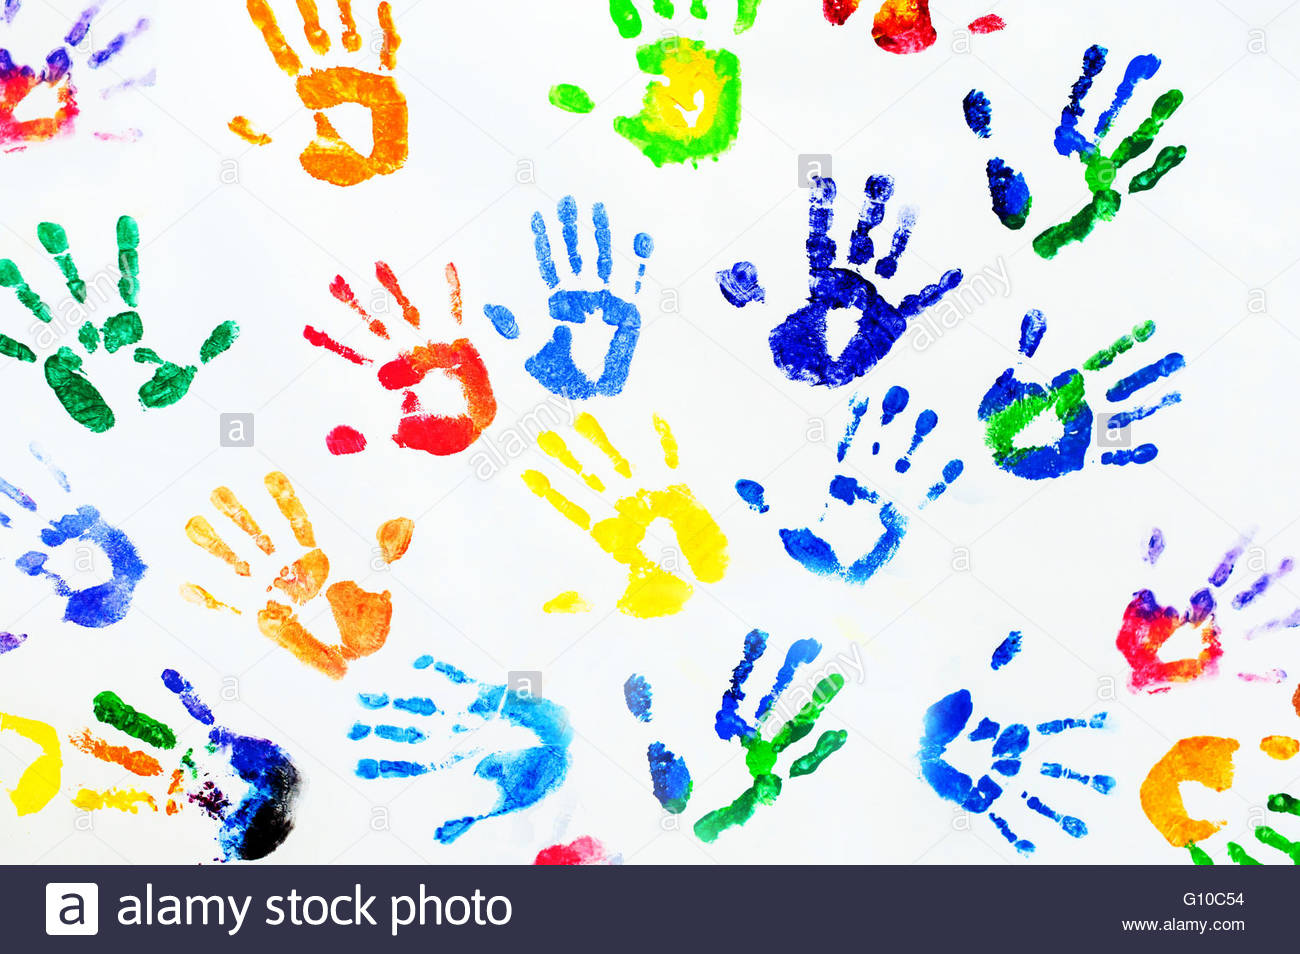 Photography of rainbow colors arm prints on white paper - Stock Image